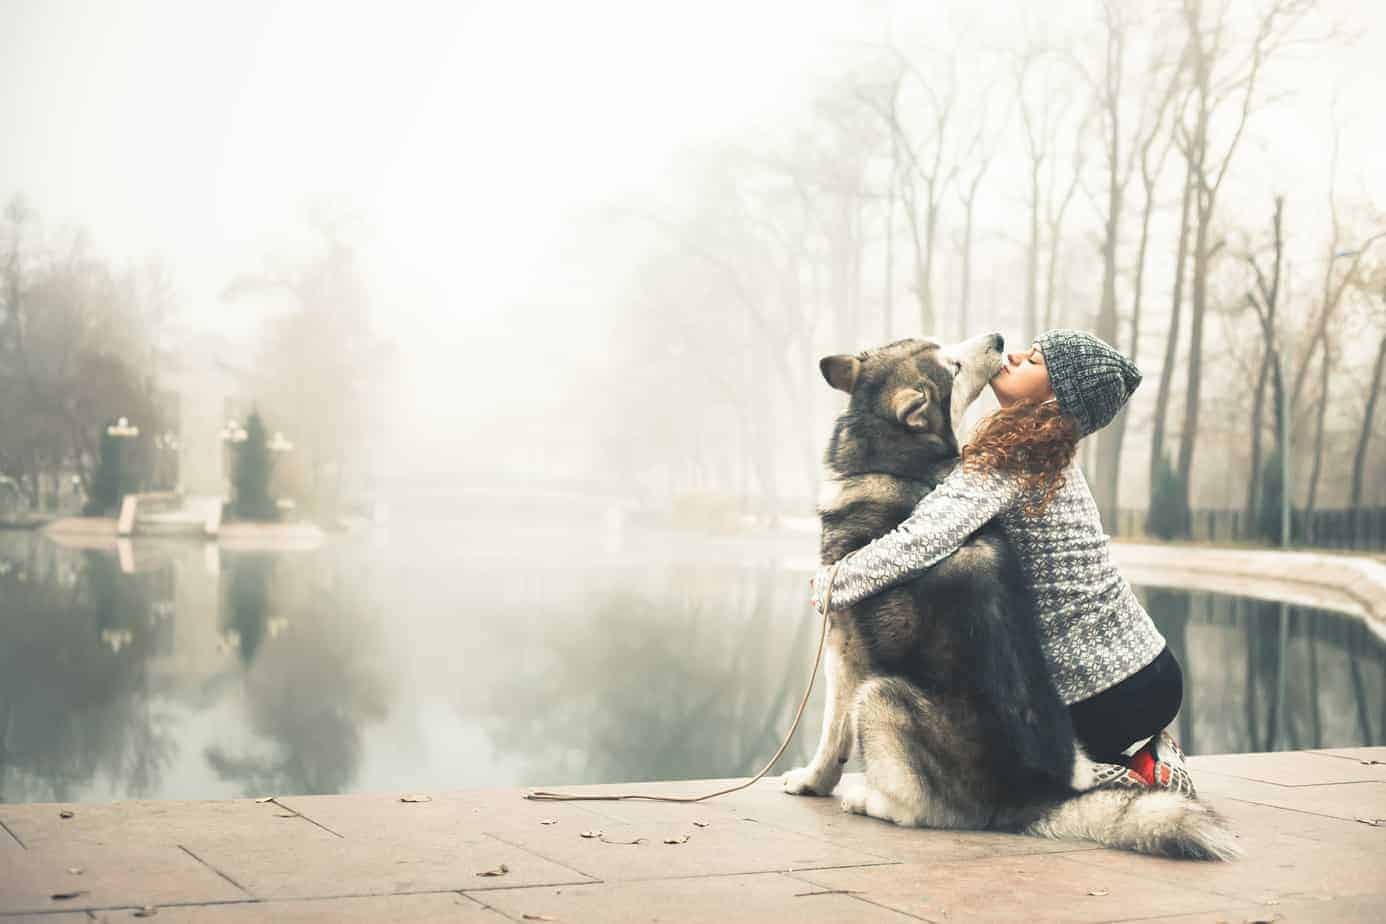 Large husky gives woman a kiss. Dogs help owners cope with depression